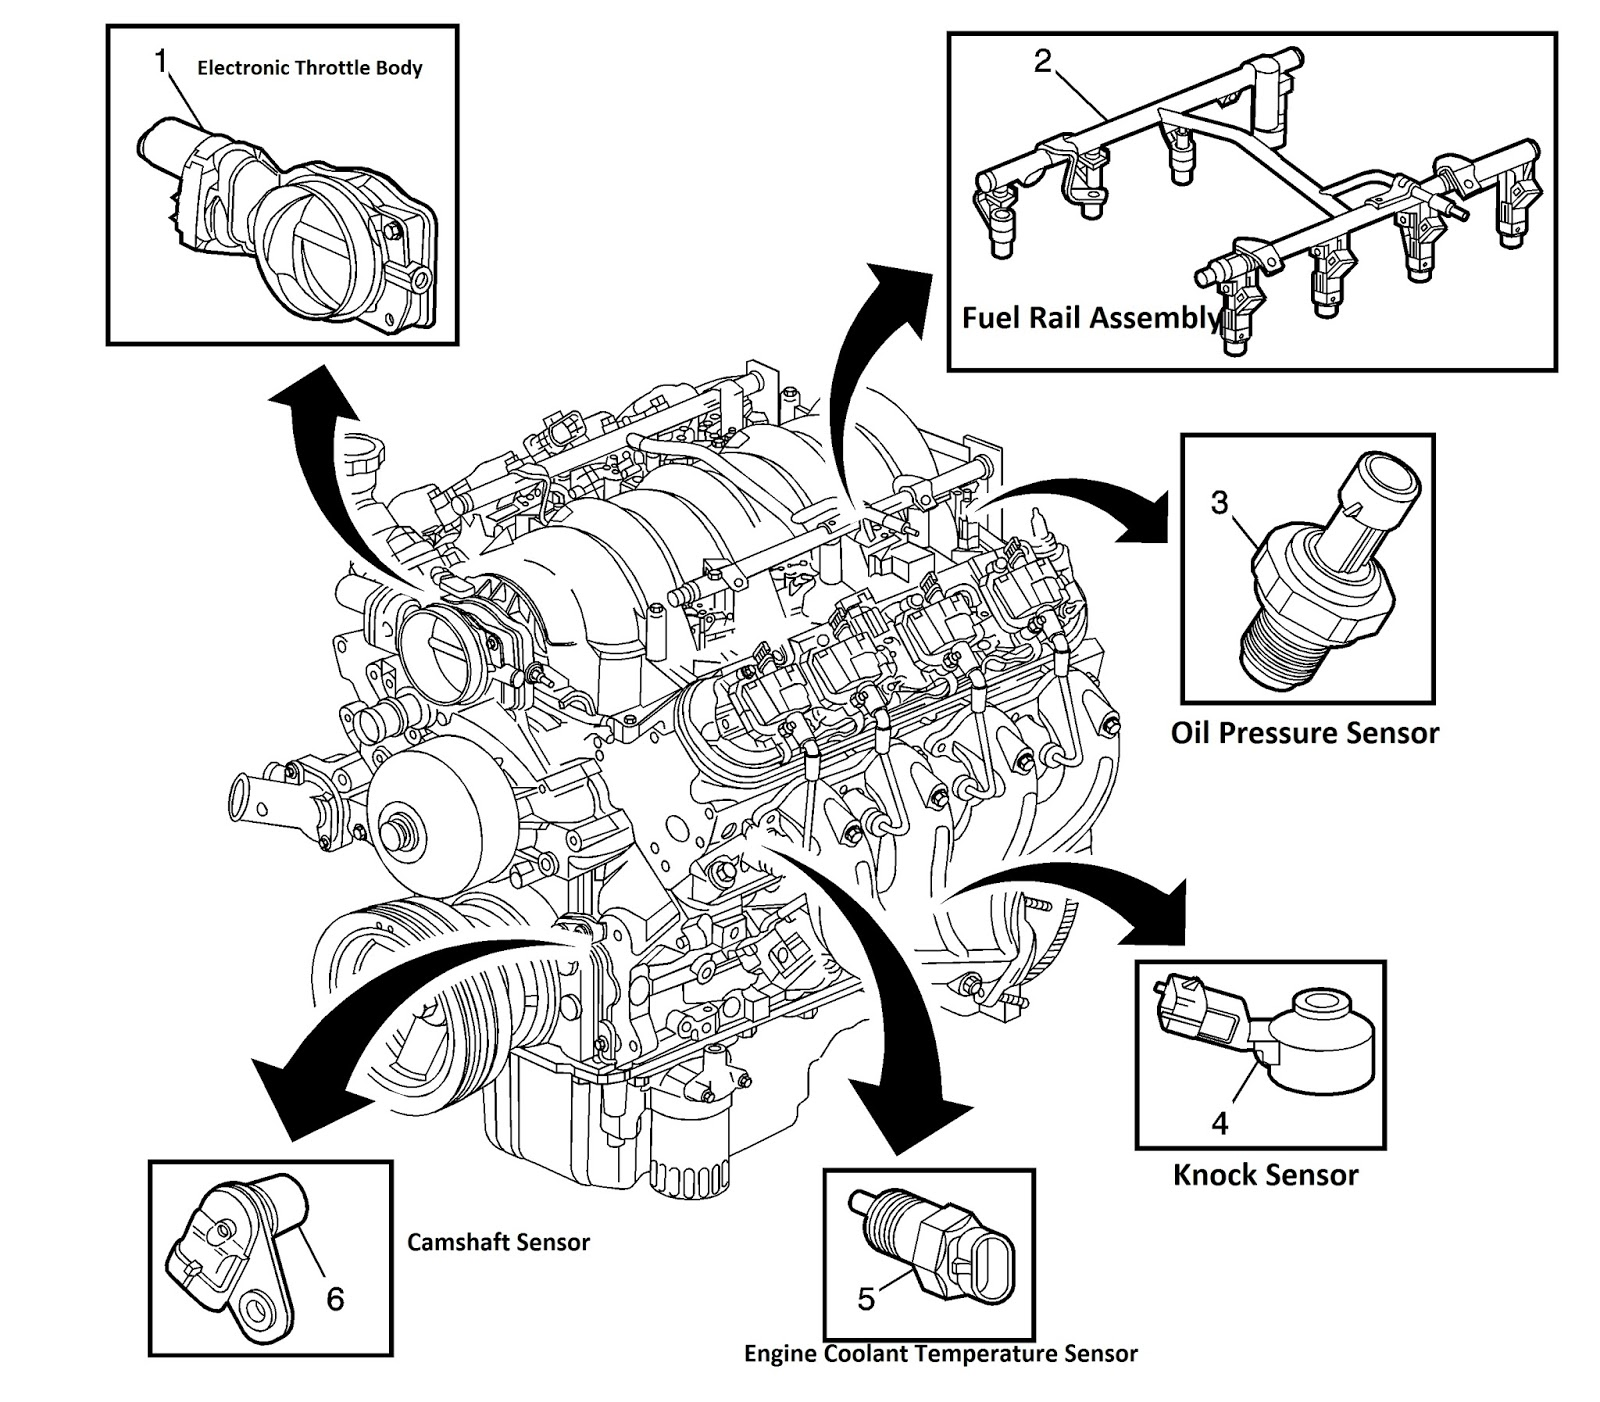 ls3 maf sensor wiring diagram ls3 engine harness wiring diagram